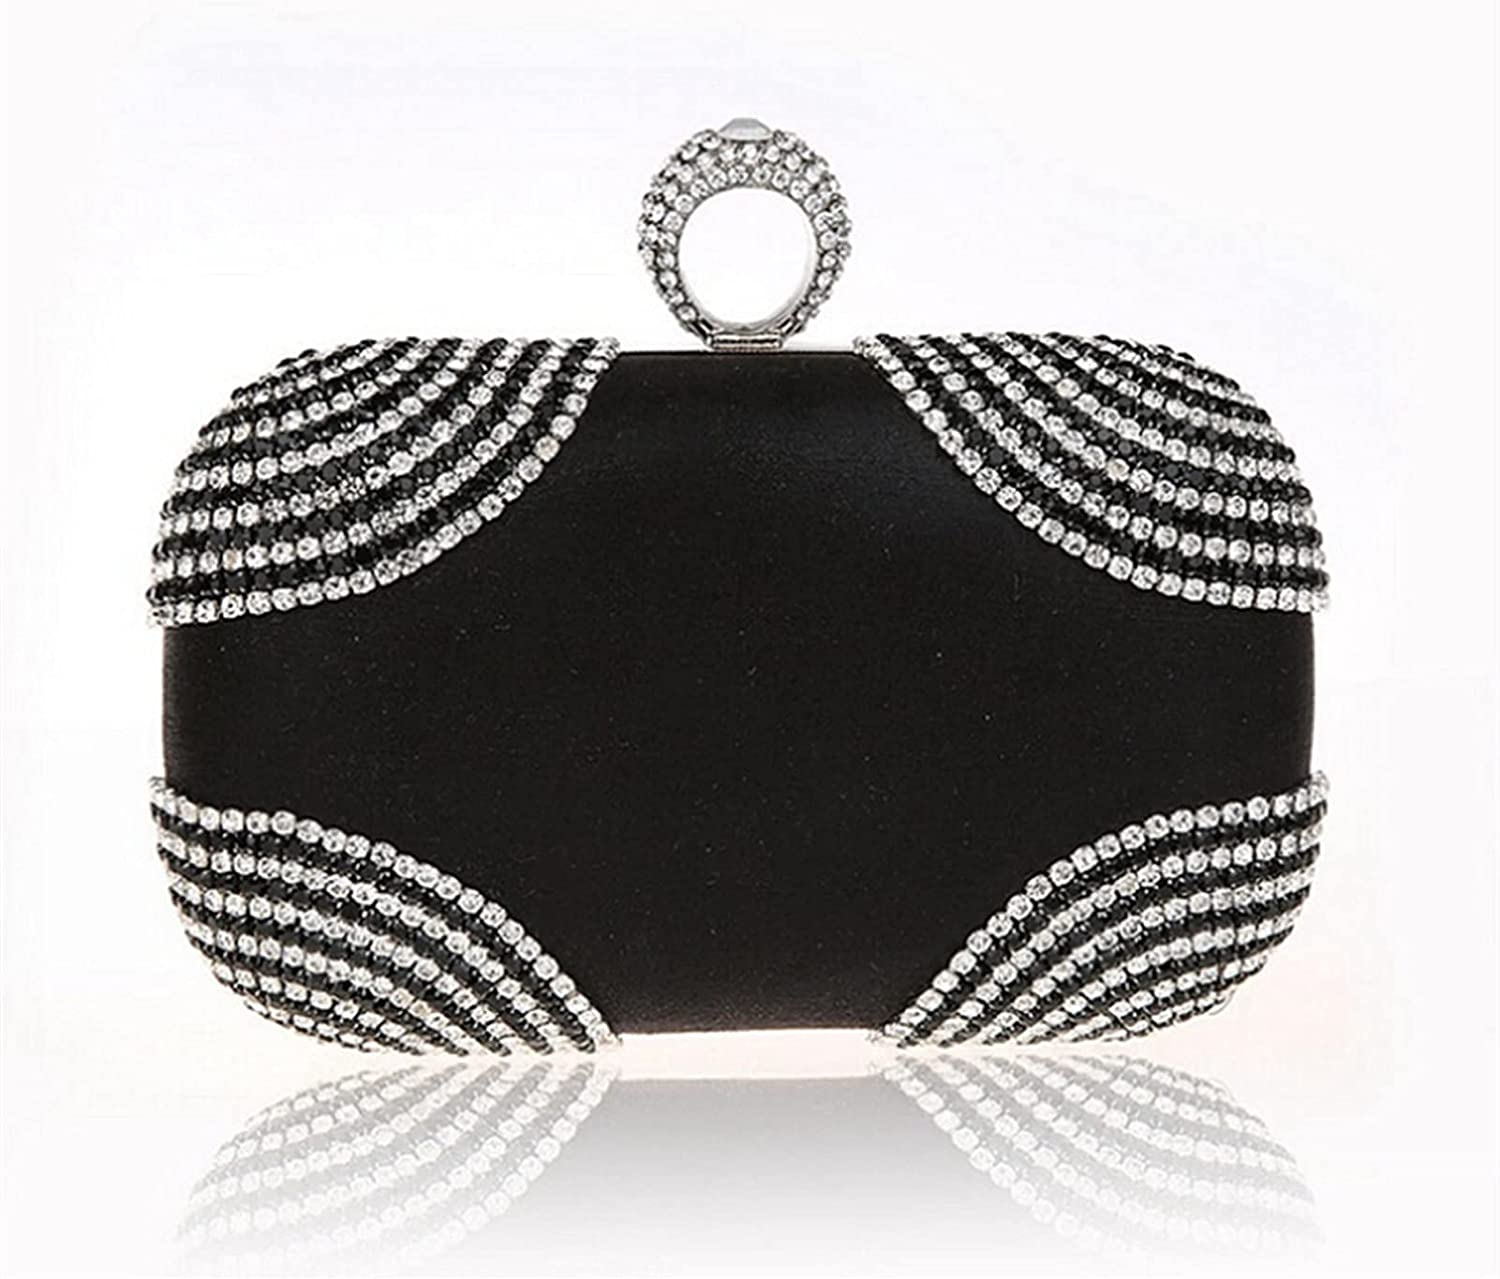 ATHH Fashionable Women Evening Bag Wedding Party Bags Diamond Rhinestone Clutches Crystal Bling Clutch Bags Purses